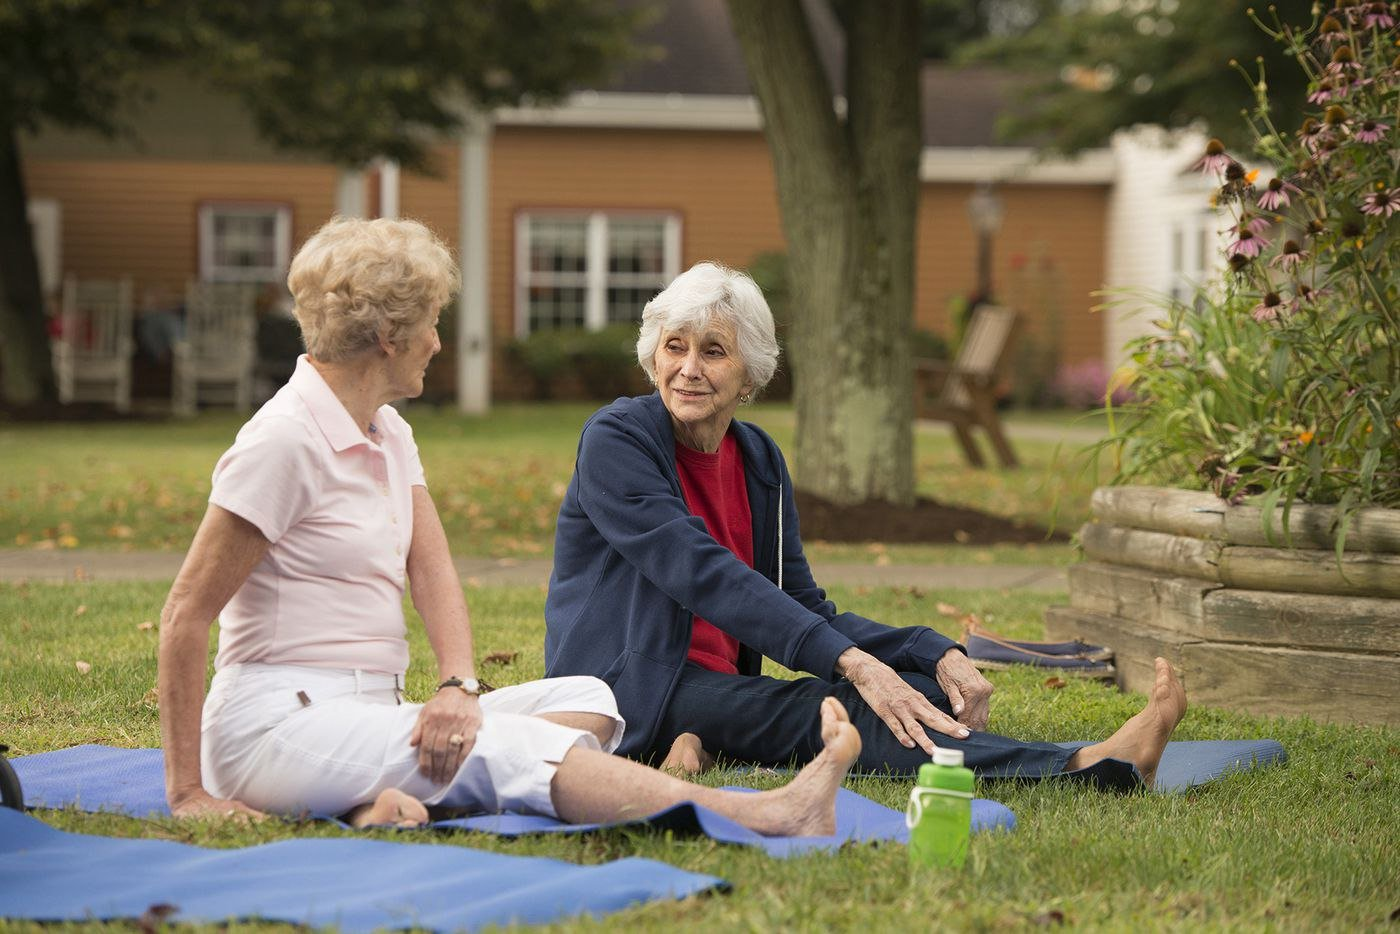 Shaping Conversations with Aging Parents